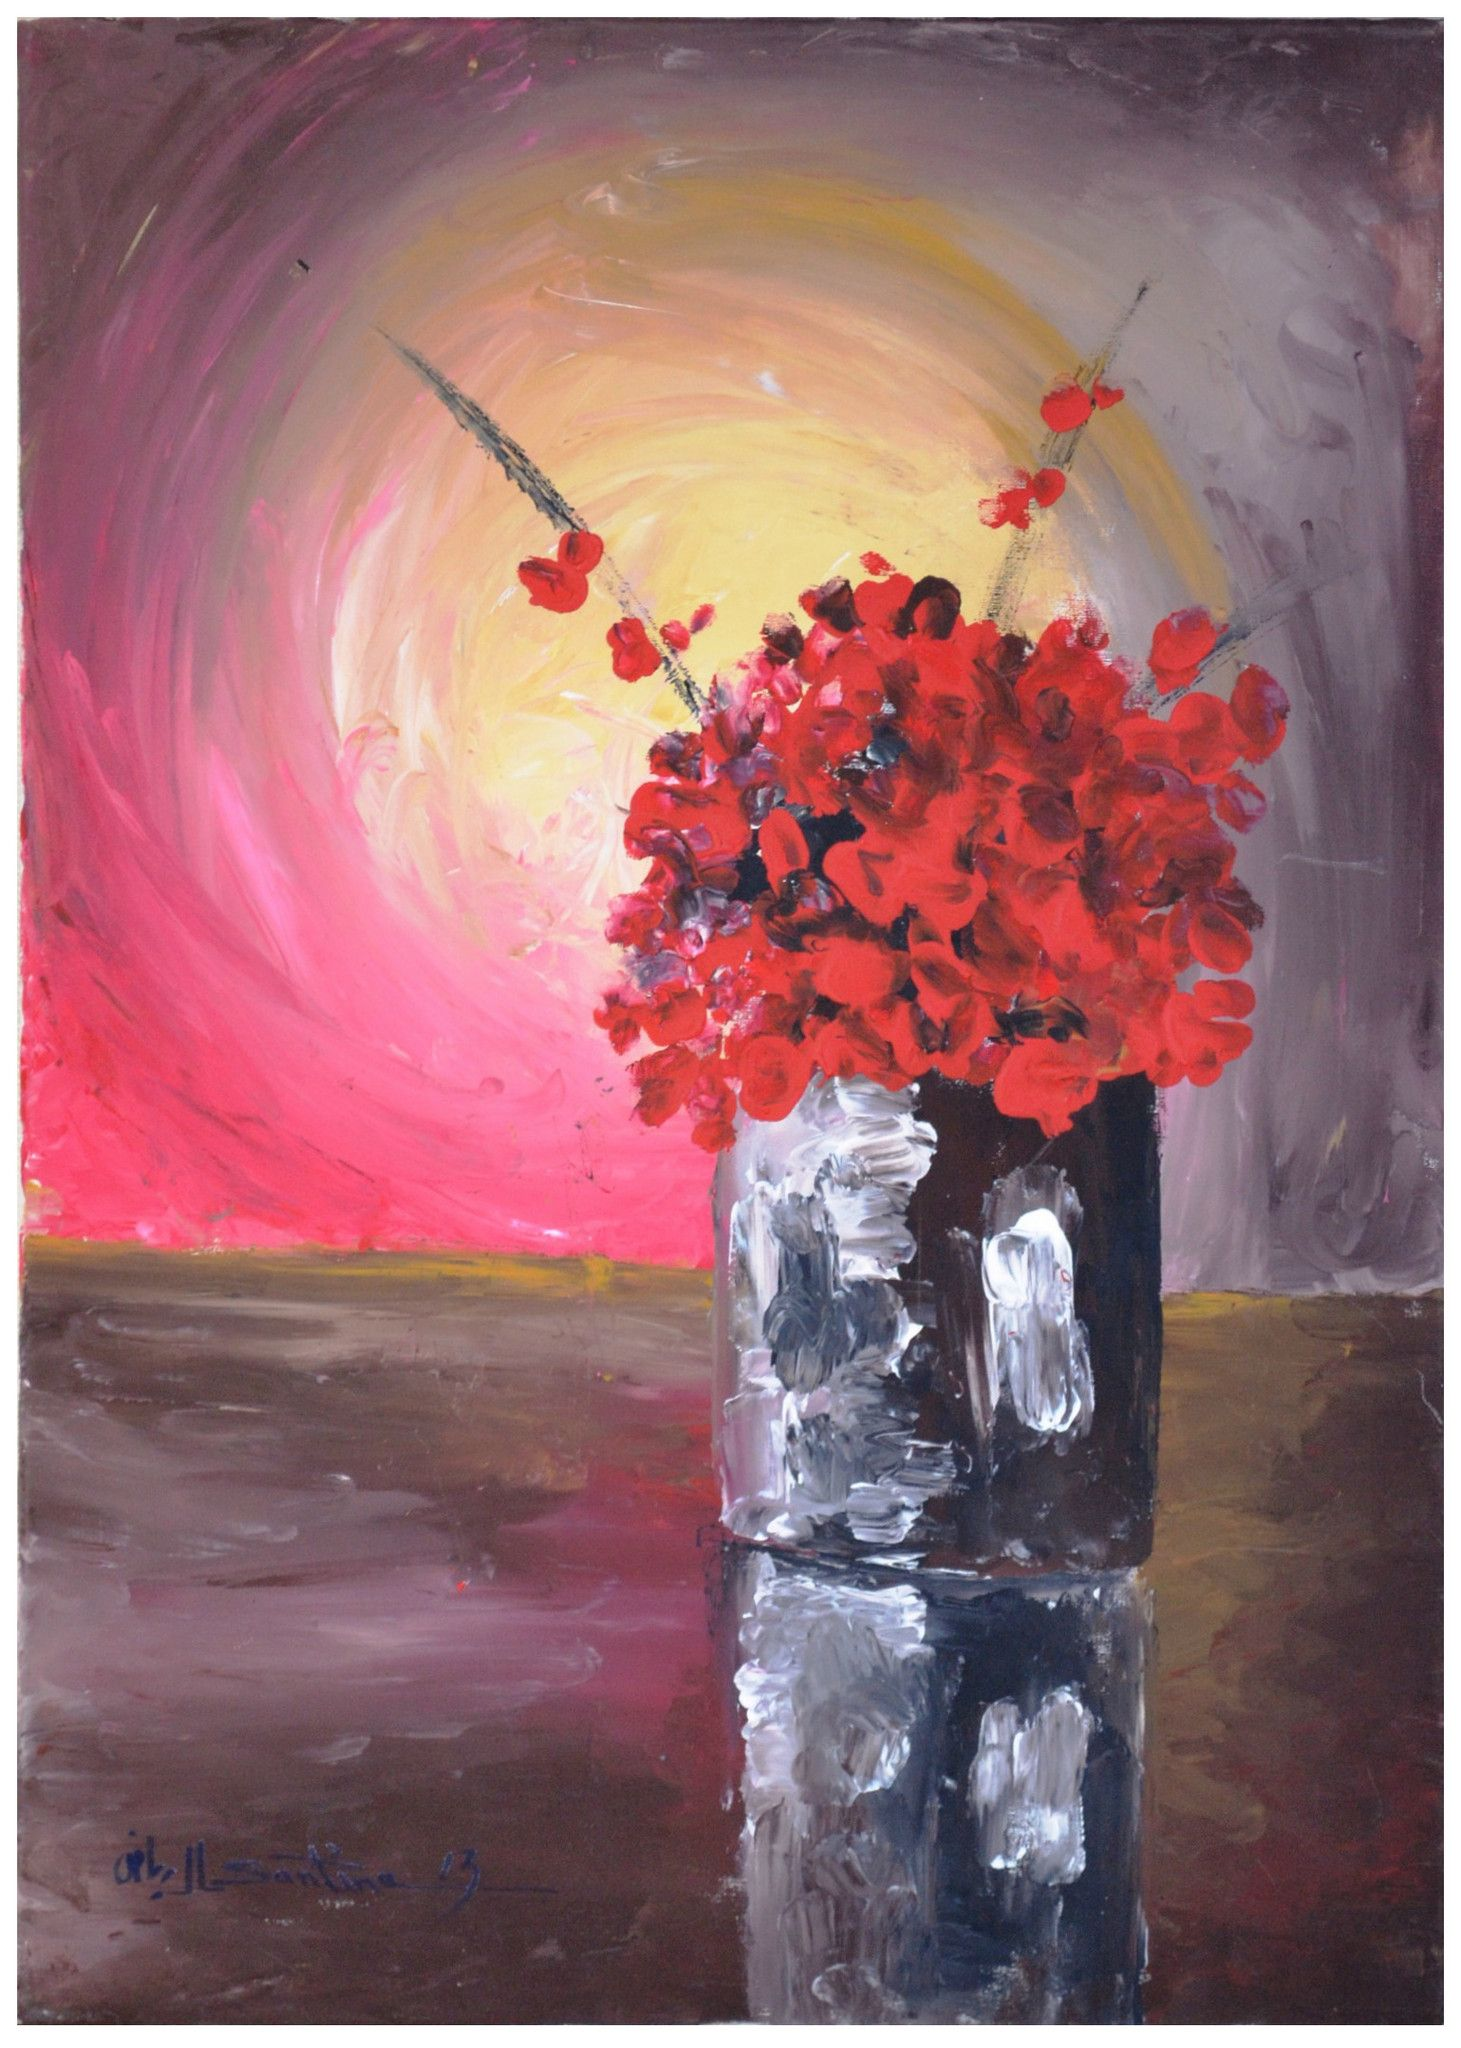 Flower vase oil painting type oil on canvas size 70 x 50 cm flower vase oil painting type oil on canvas size 70 x 50 cm floridaeventfo Images